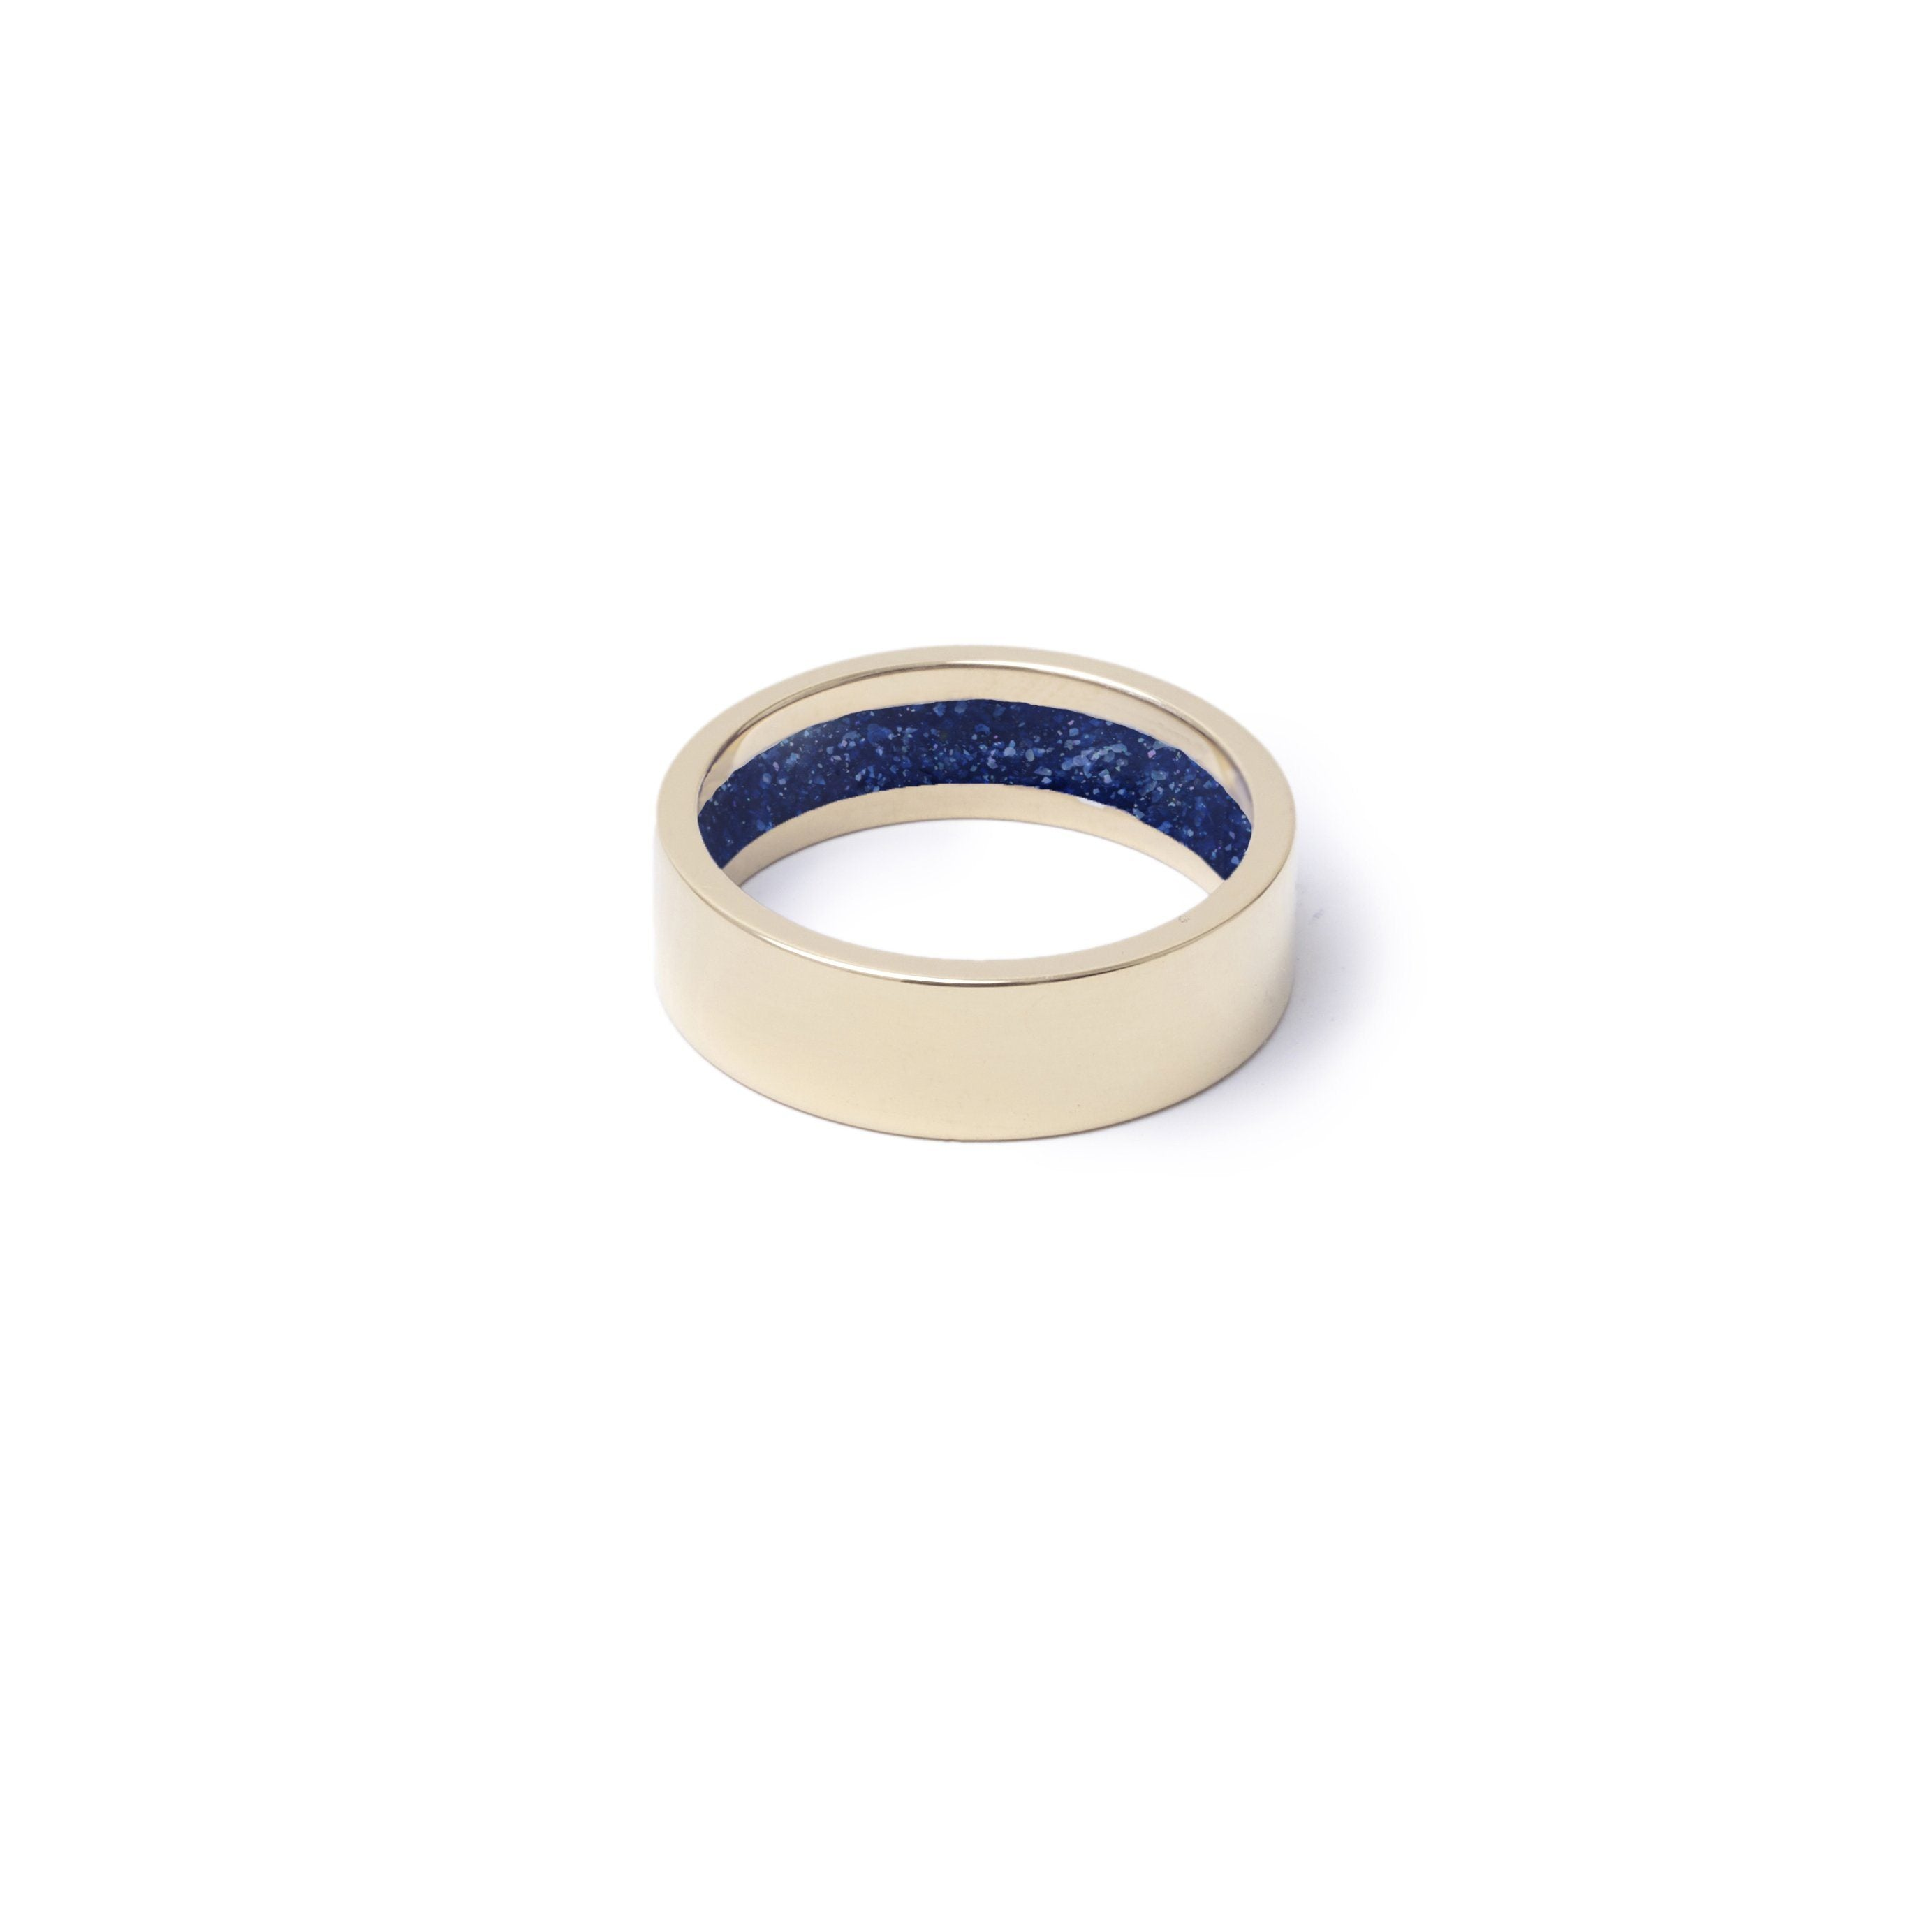 Everence Ring, 10k Yellow Gold everence.life 6mm Navy